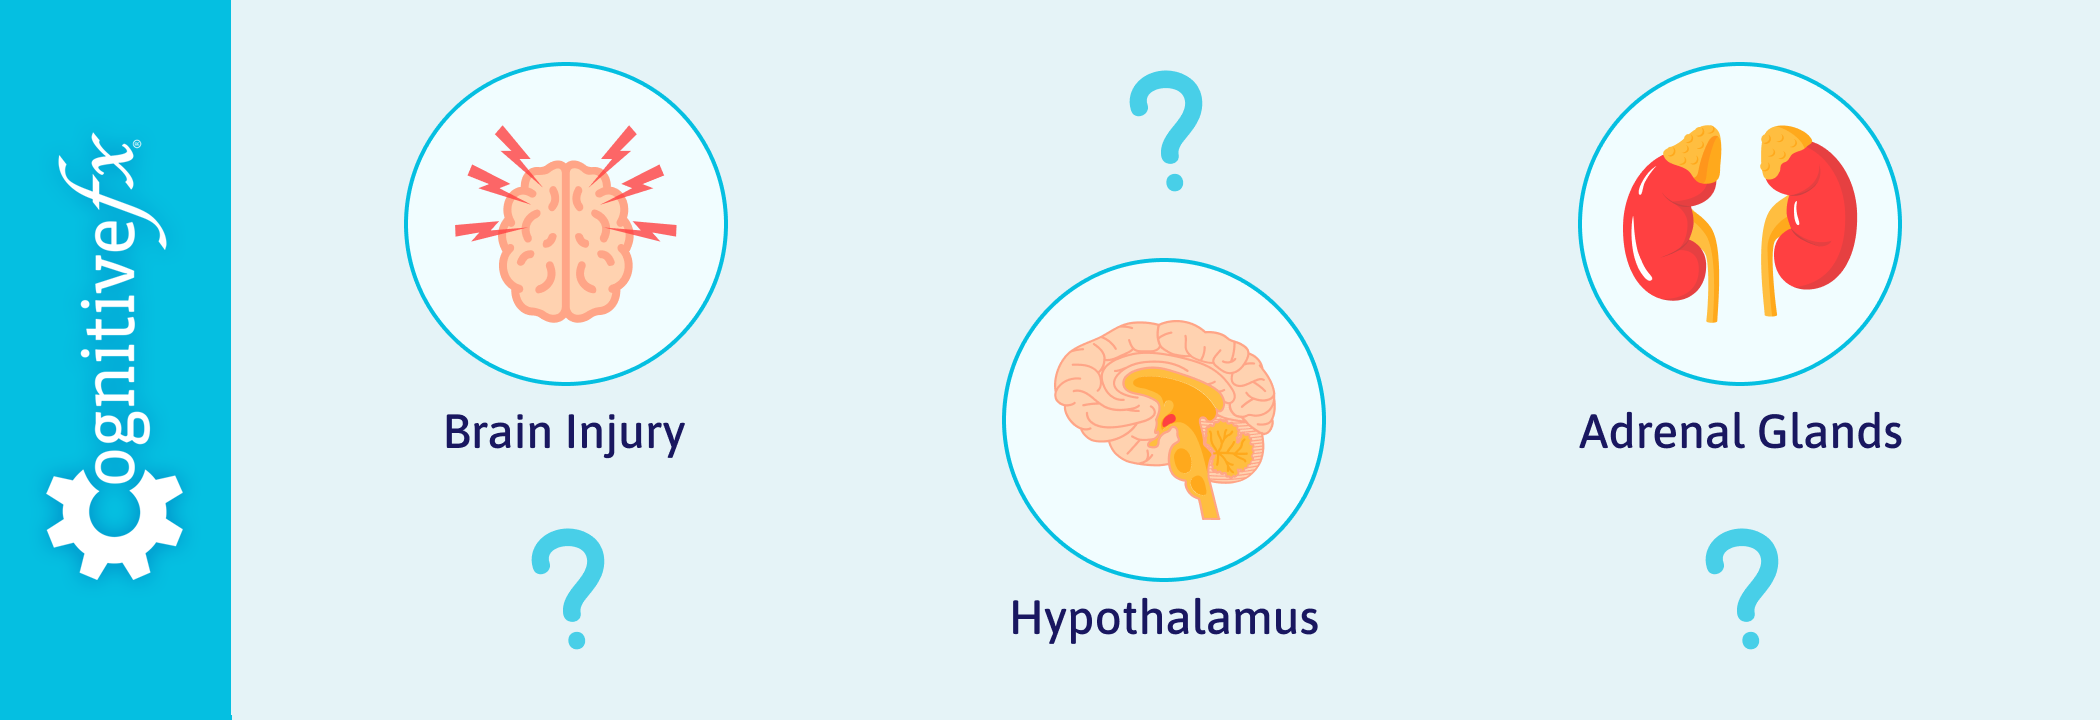 How a Brain Injury Can Cause Hormone Dysregulation (And What to Do About It)